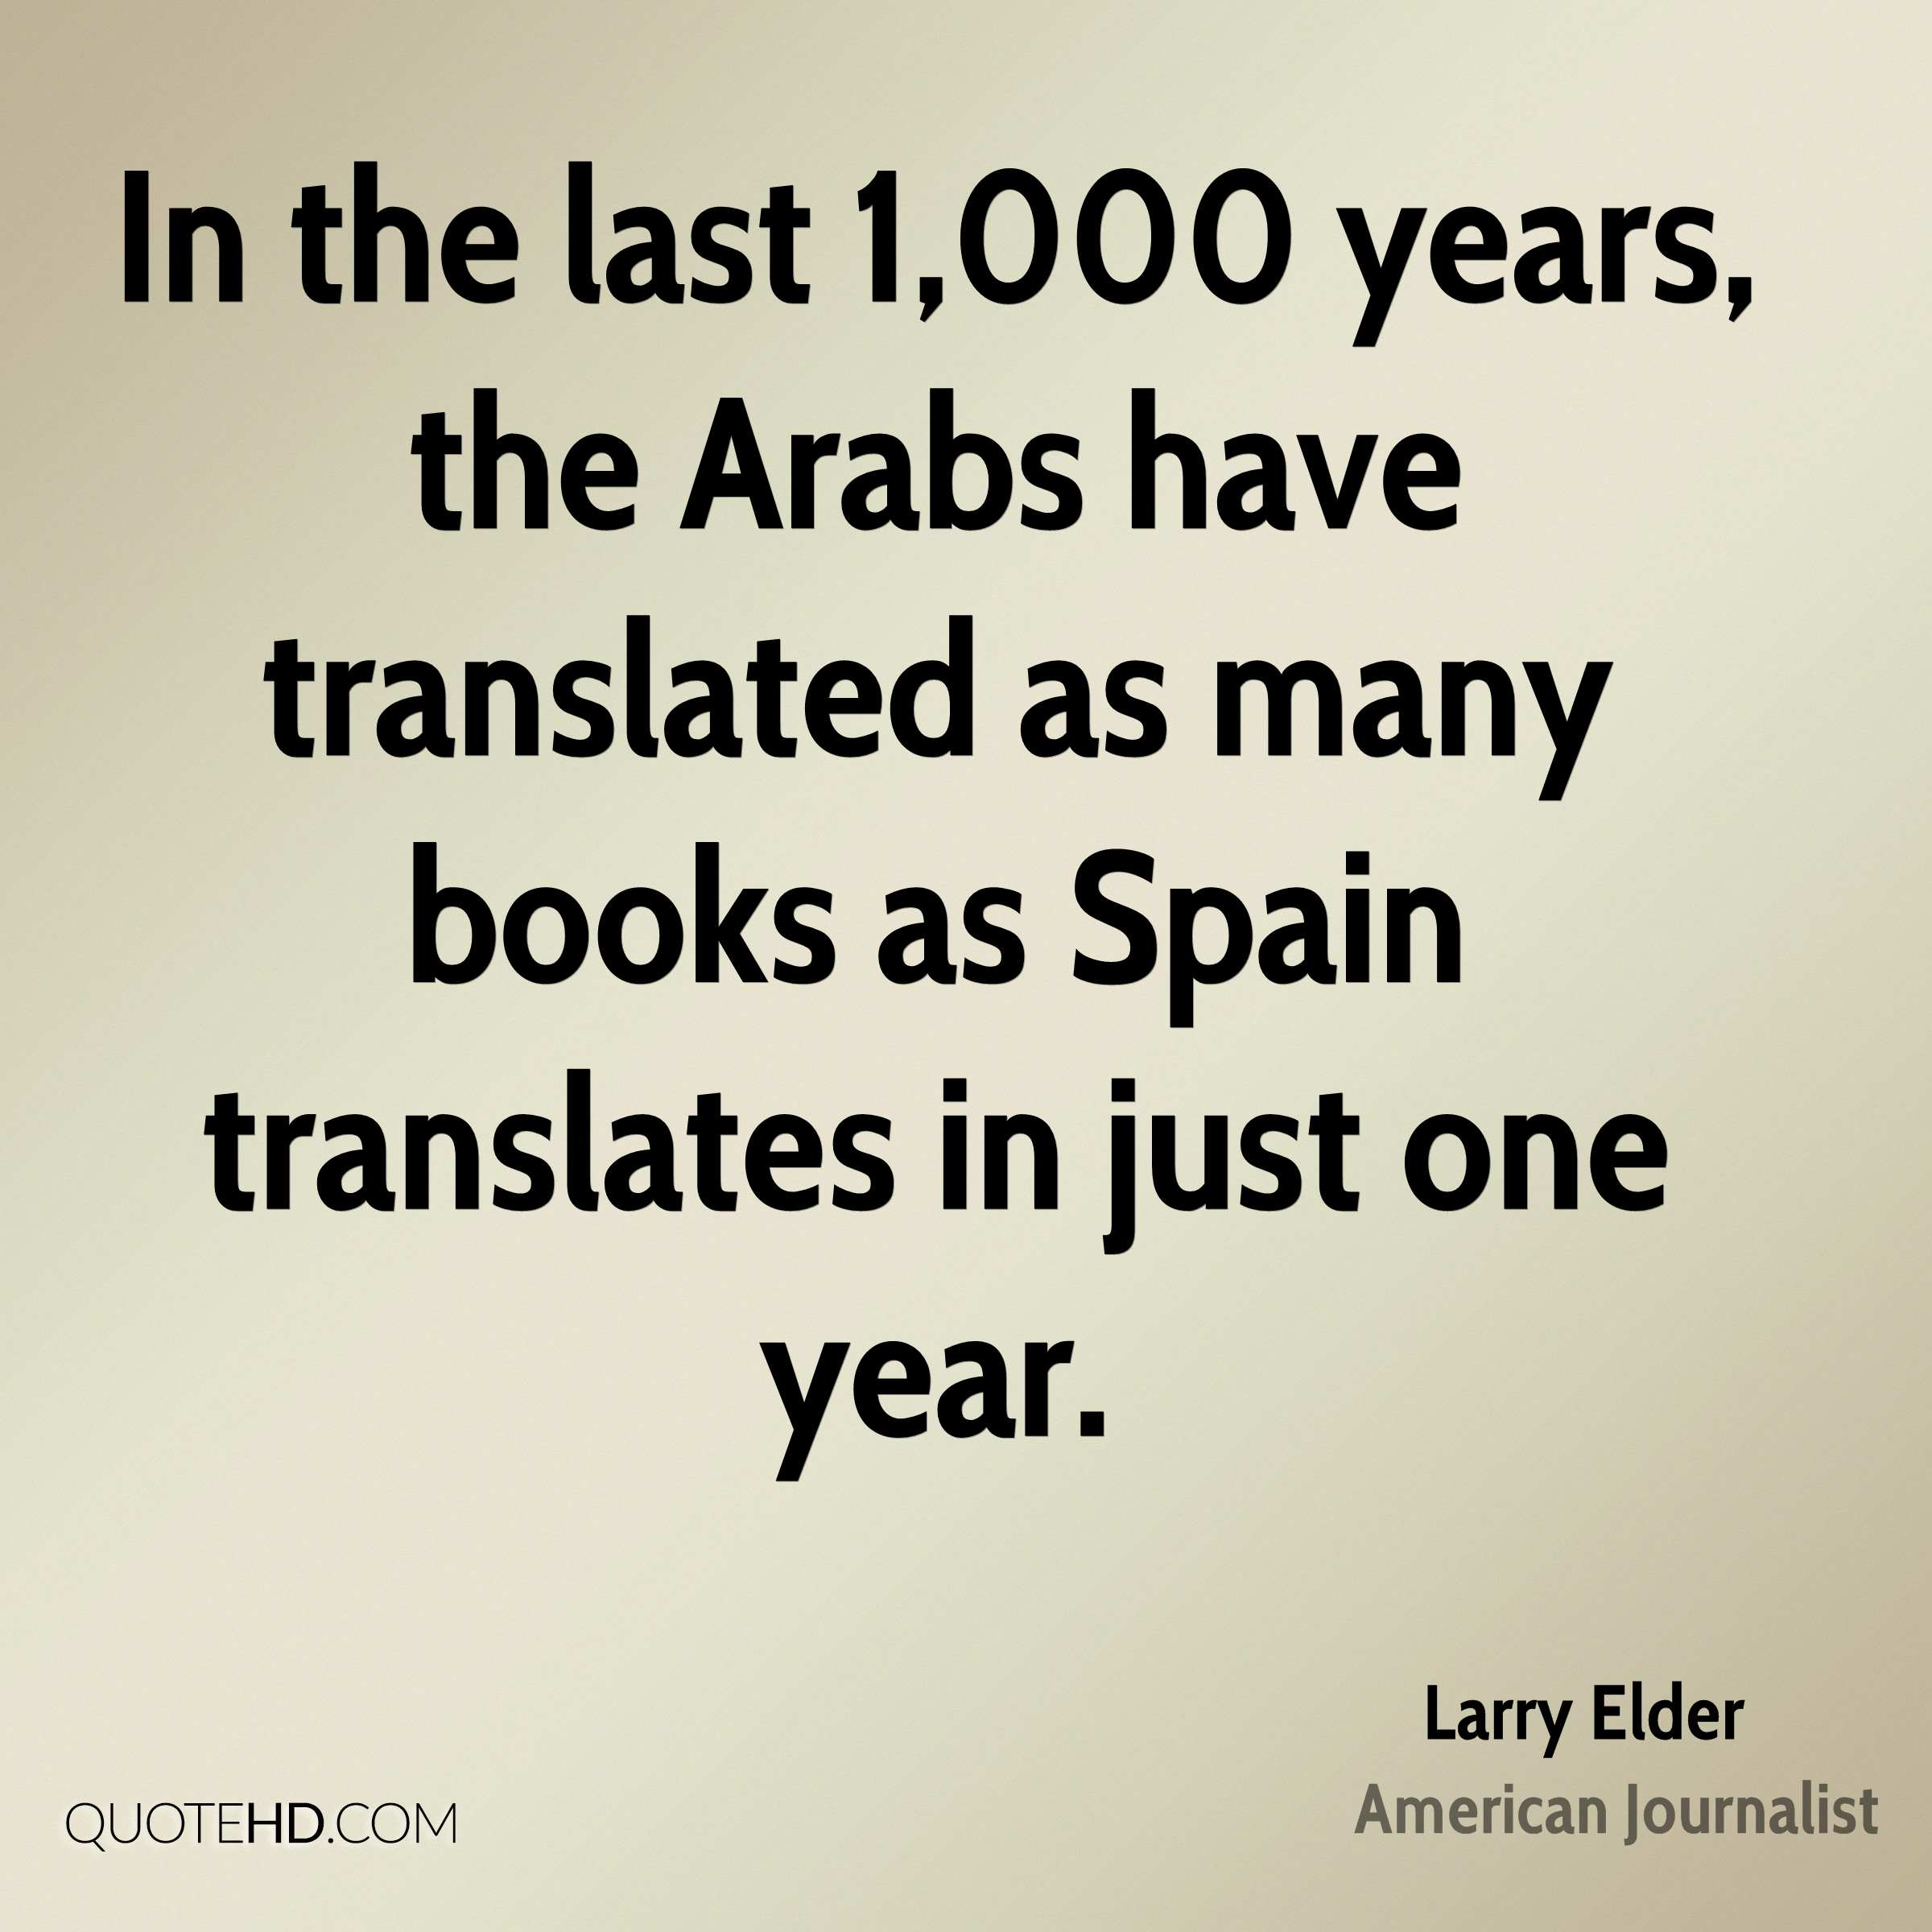 In the last 1,000 years, the Arabs have translated as many books as Spain translates in just one year.